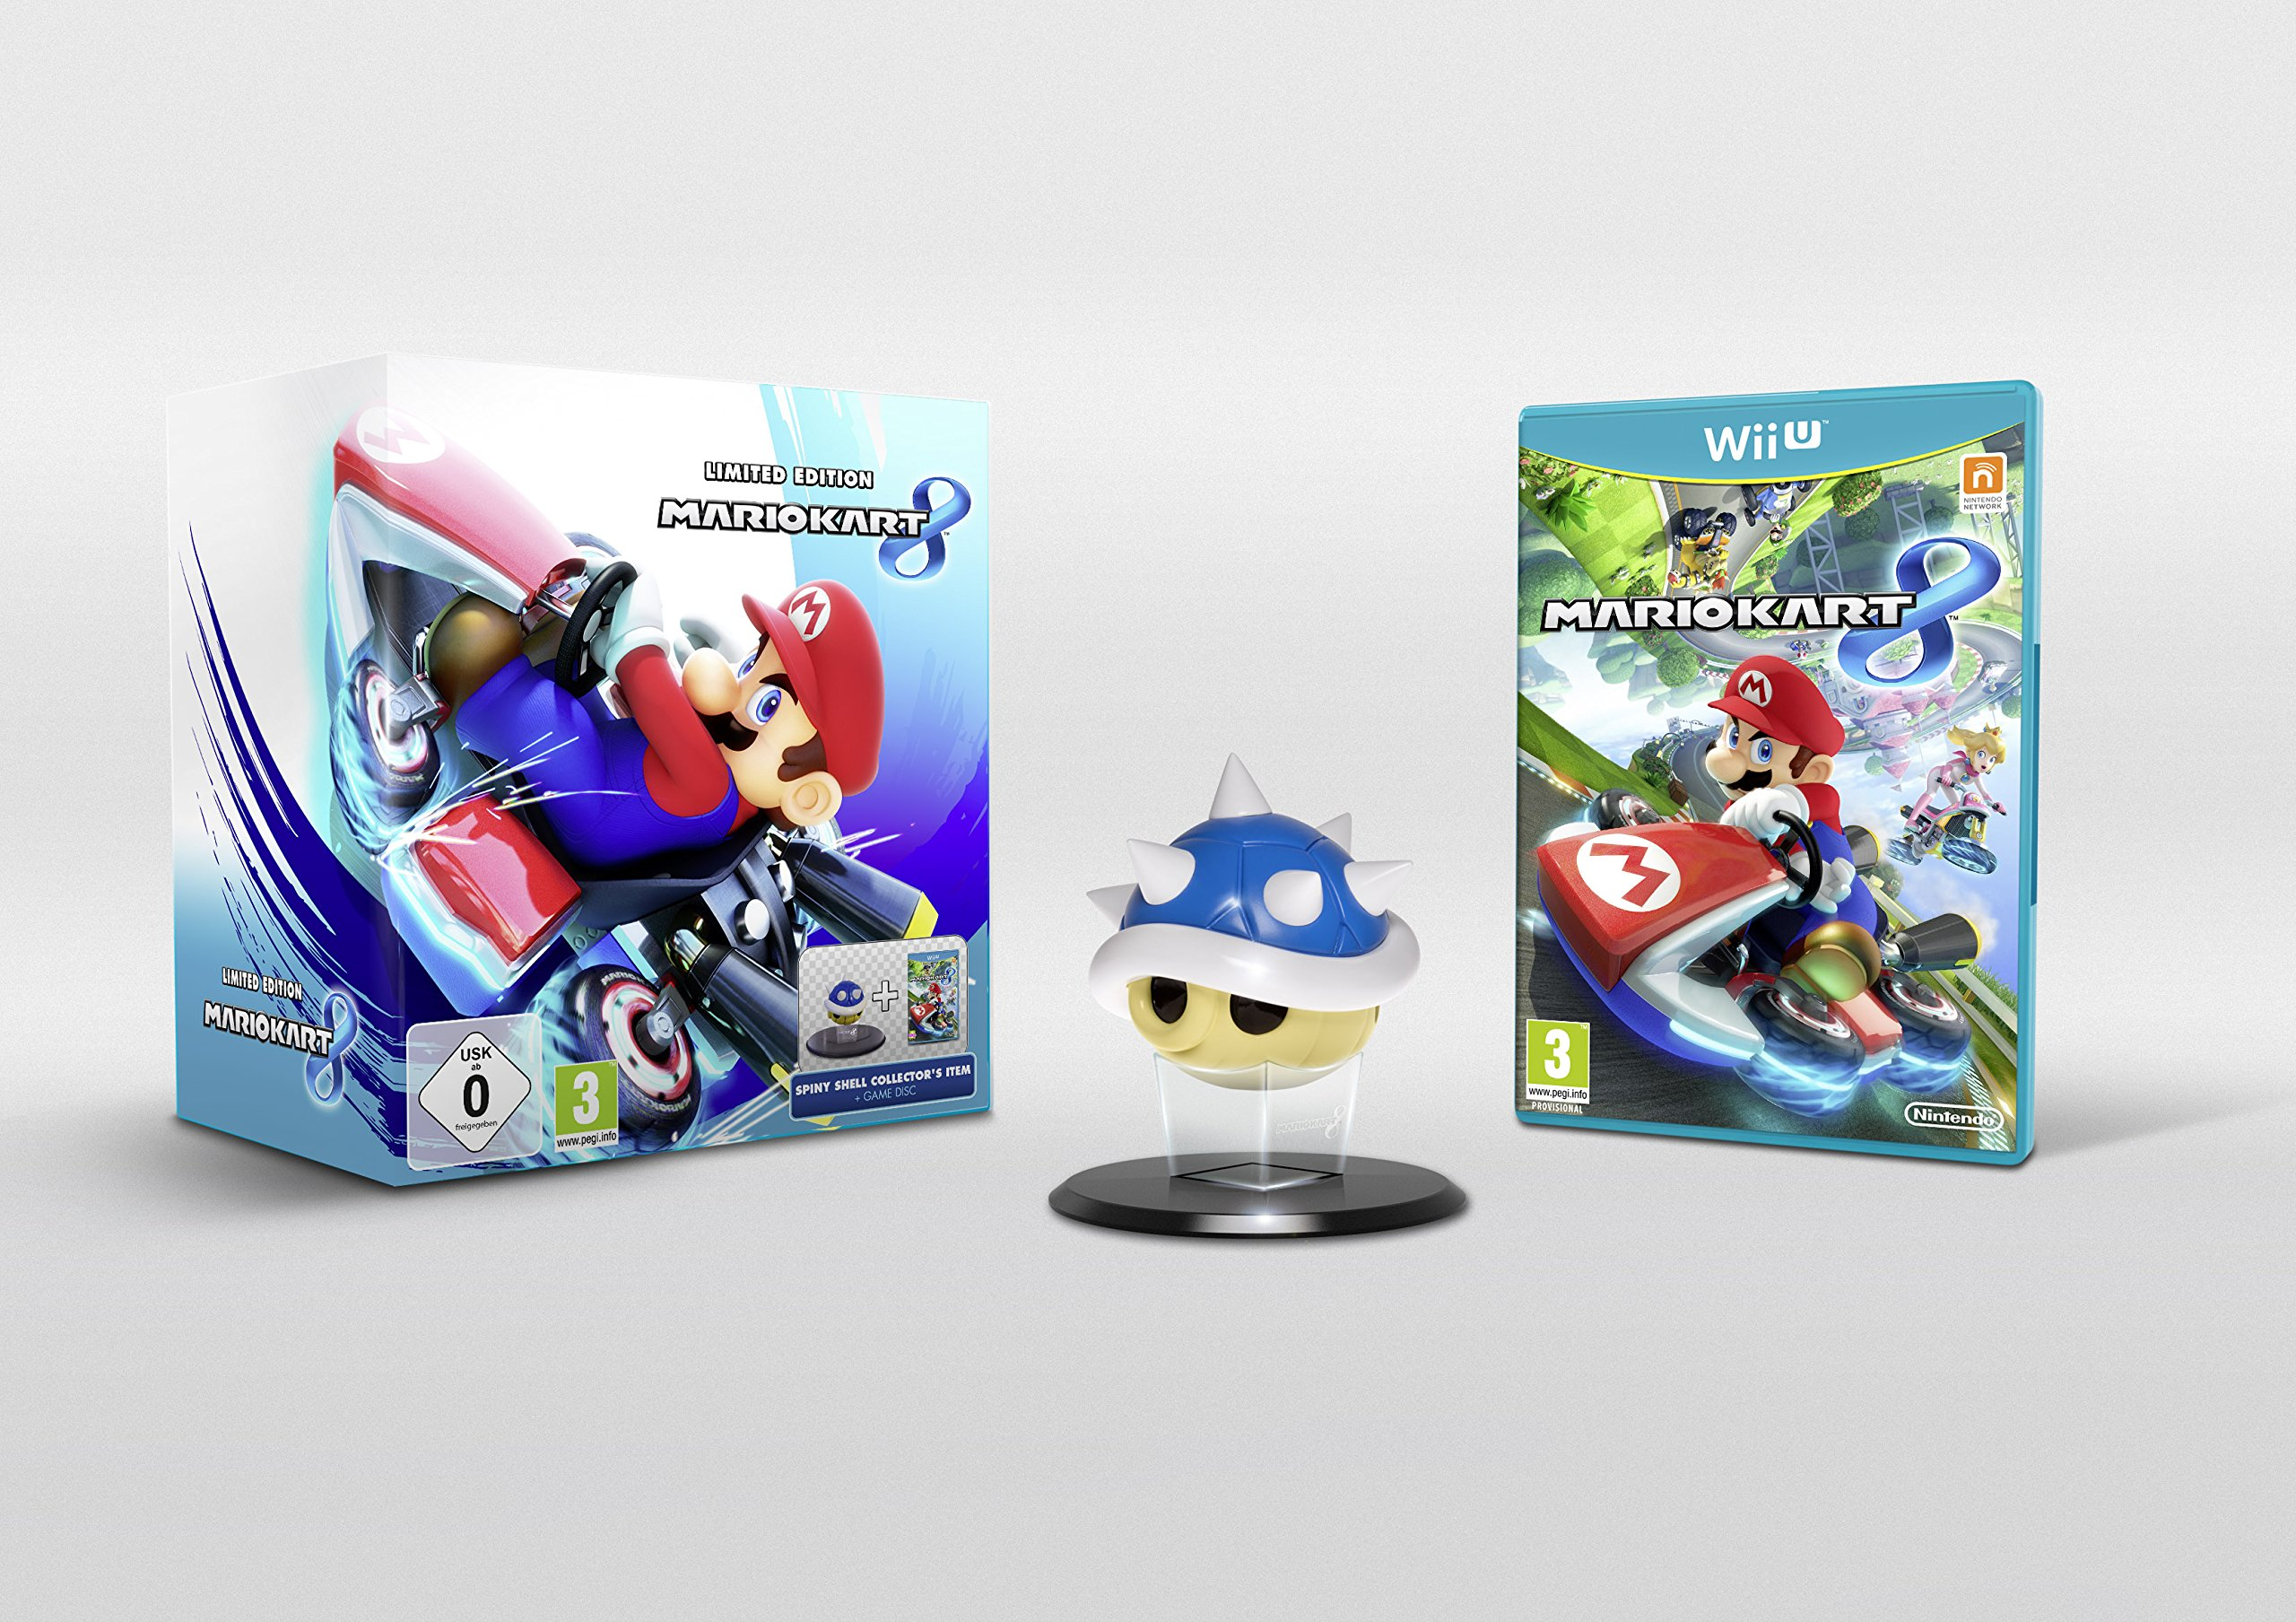 Mario Kart 8 Limited Edition with Spiny Blue Shell Collector's Item UK PAL Version[Nintendo Wii U] NEW